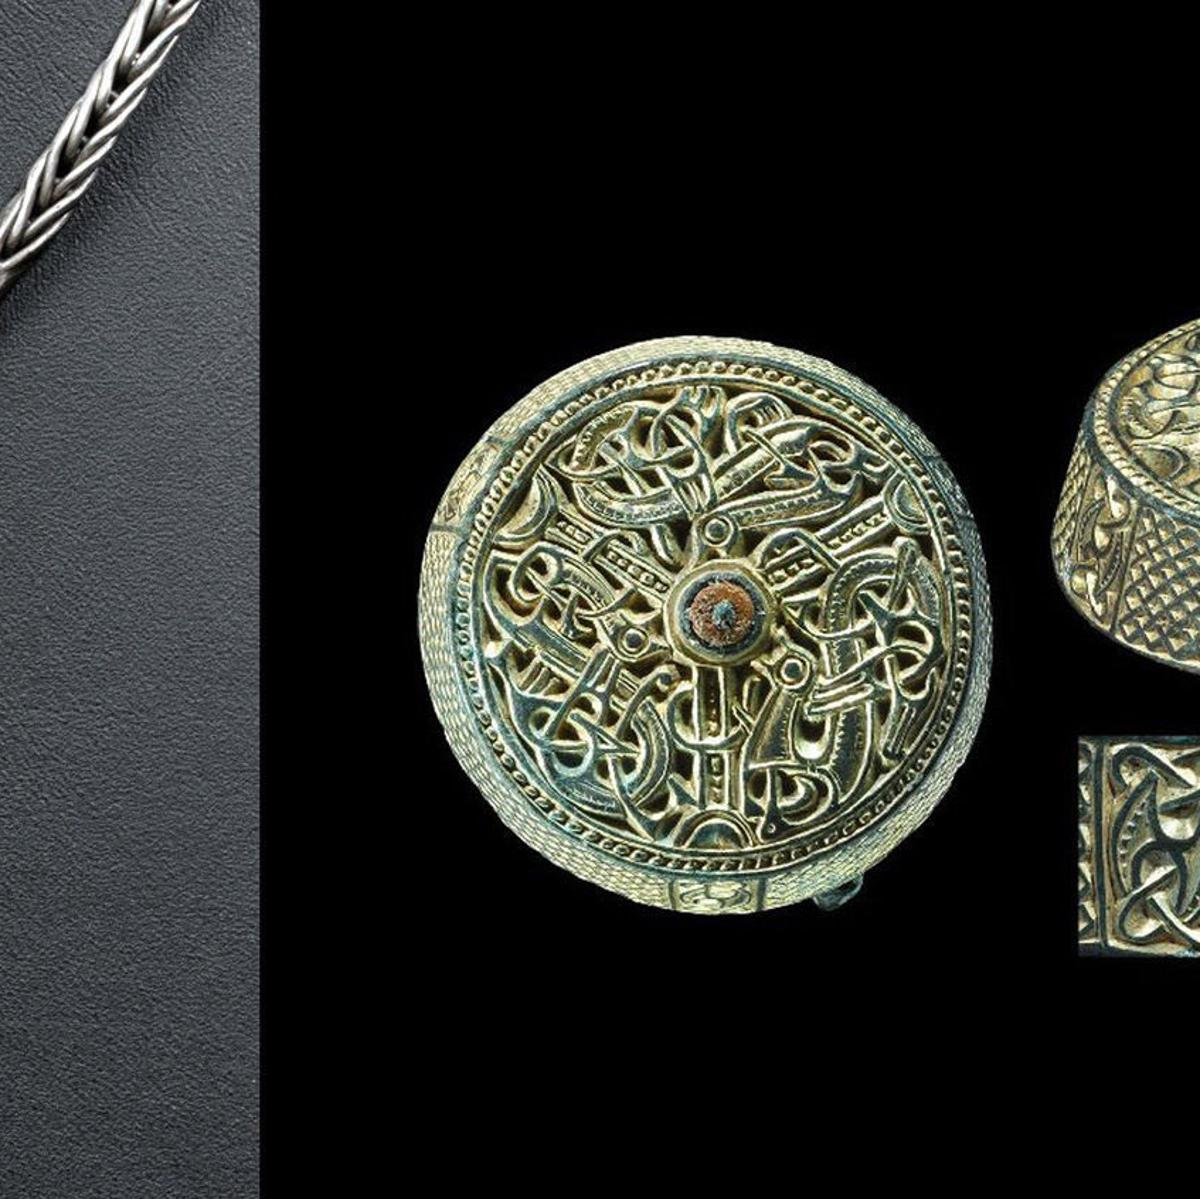 Game Of Thrones Sparks Collector Interest In Authentic Viking Items Entertainment Tucson Com